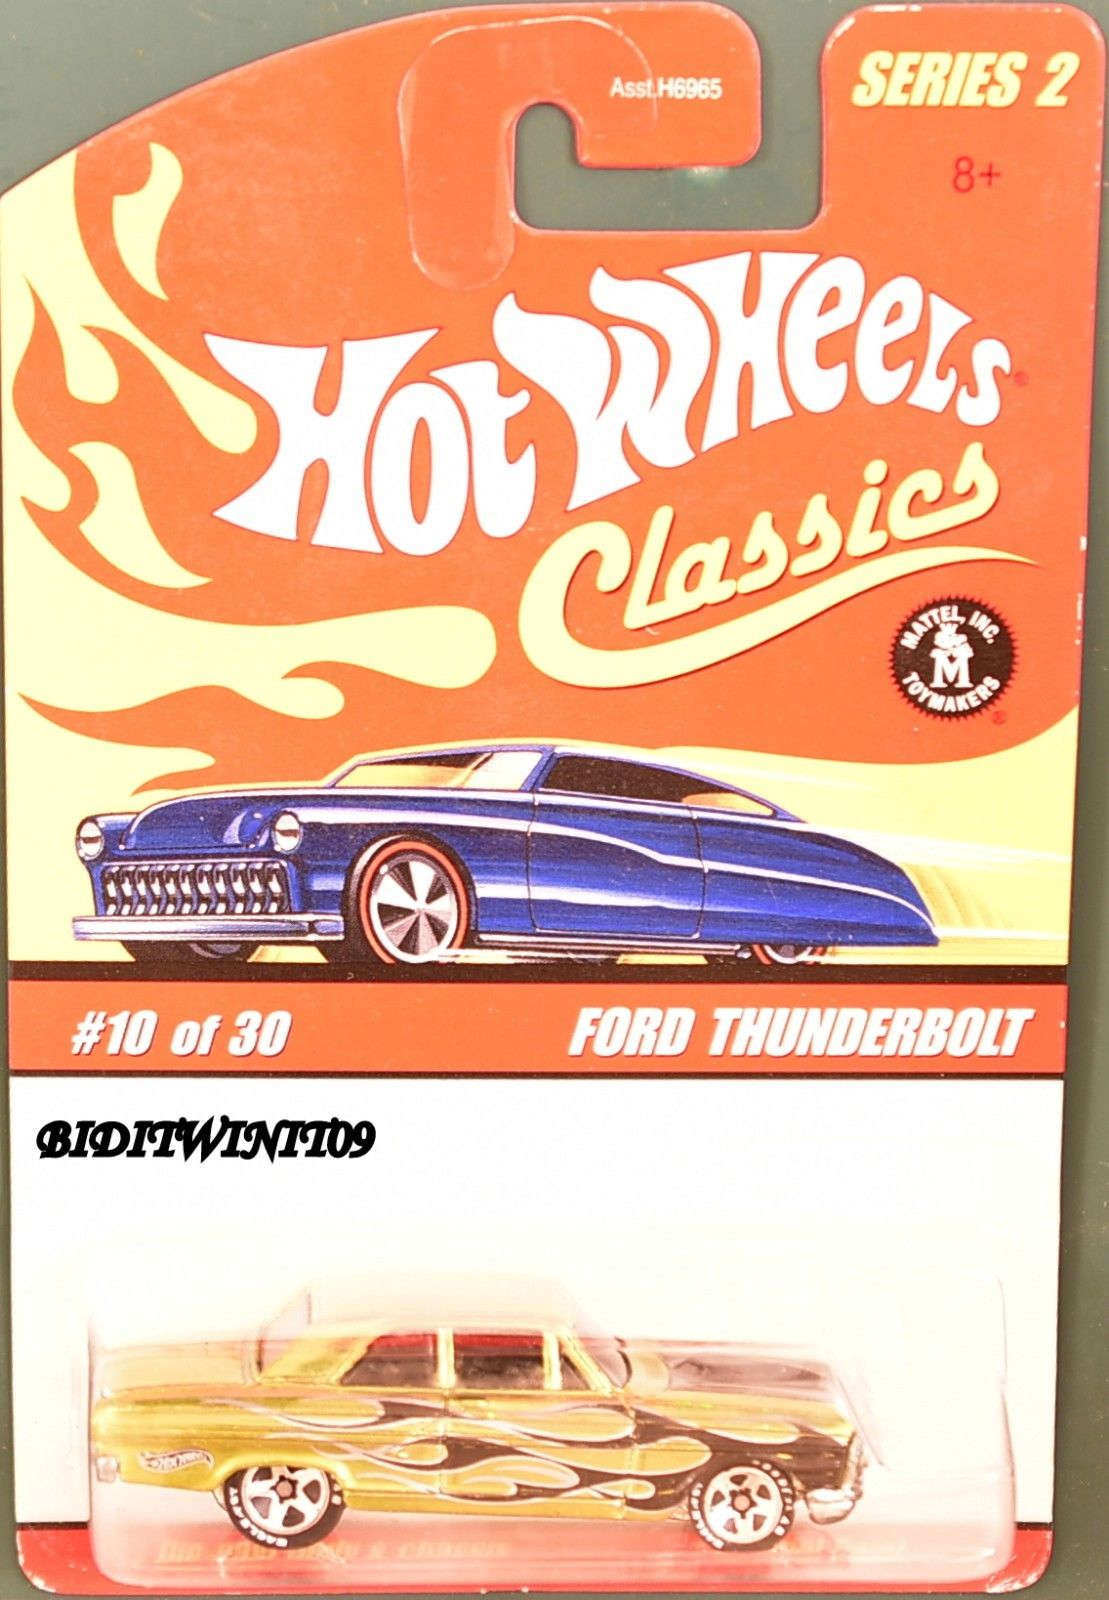 HOT WHEELS CLASSICS SERIES 2 #10/30 - FORD THUNDERBOLT YELLOW